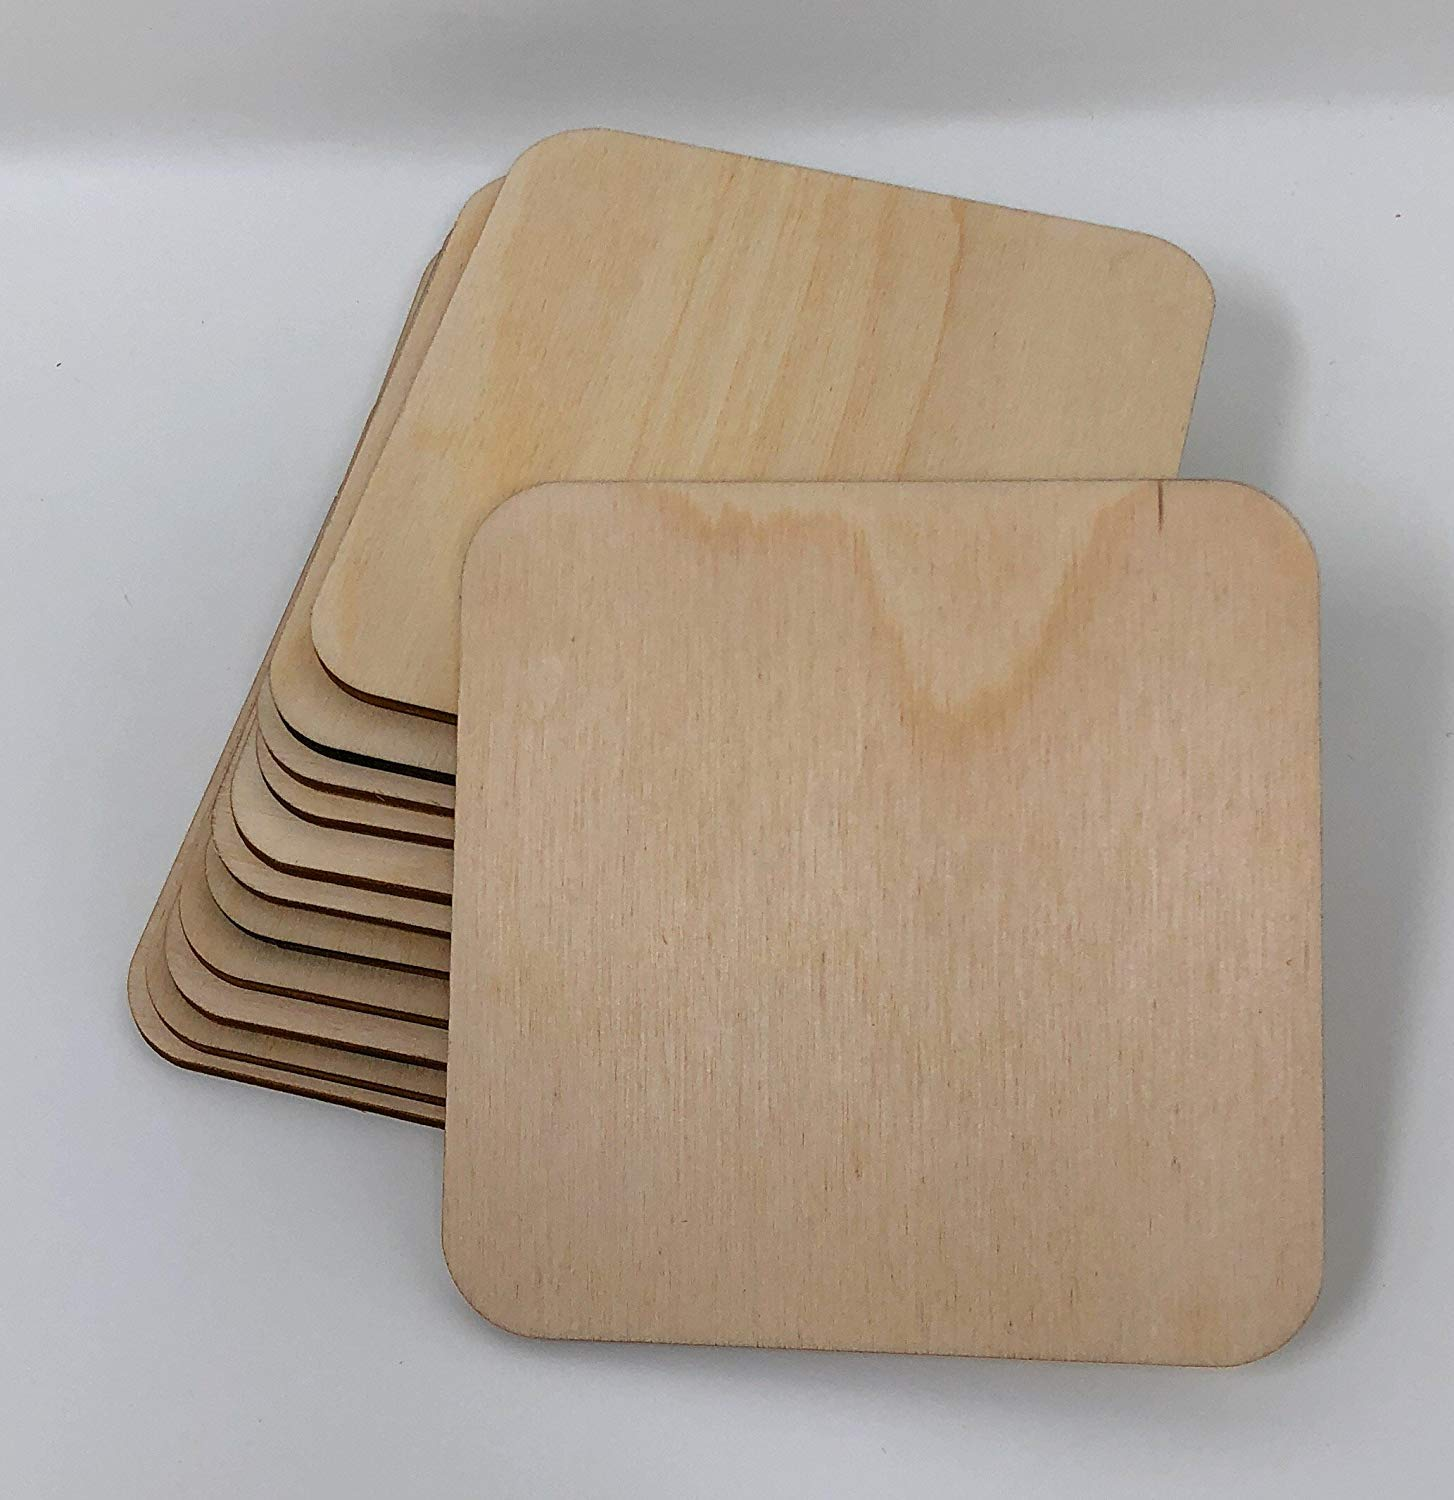 Gocutouts Unfinished Wooden Coasters 4''x4'' 25 Pack Birch Wooden Coaster Blanks (25 Pack)